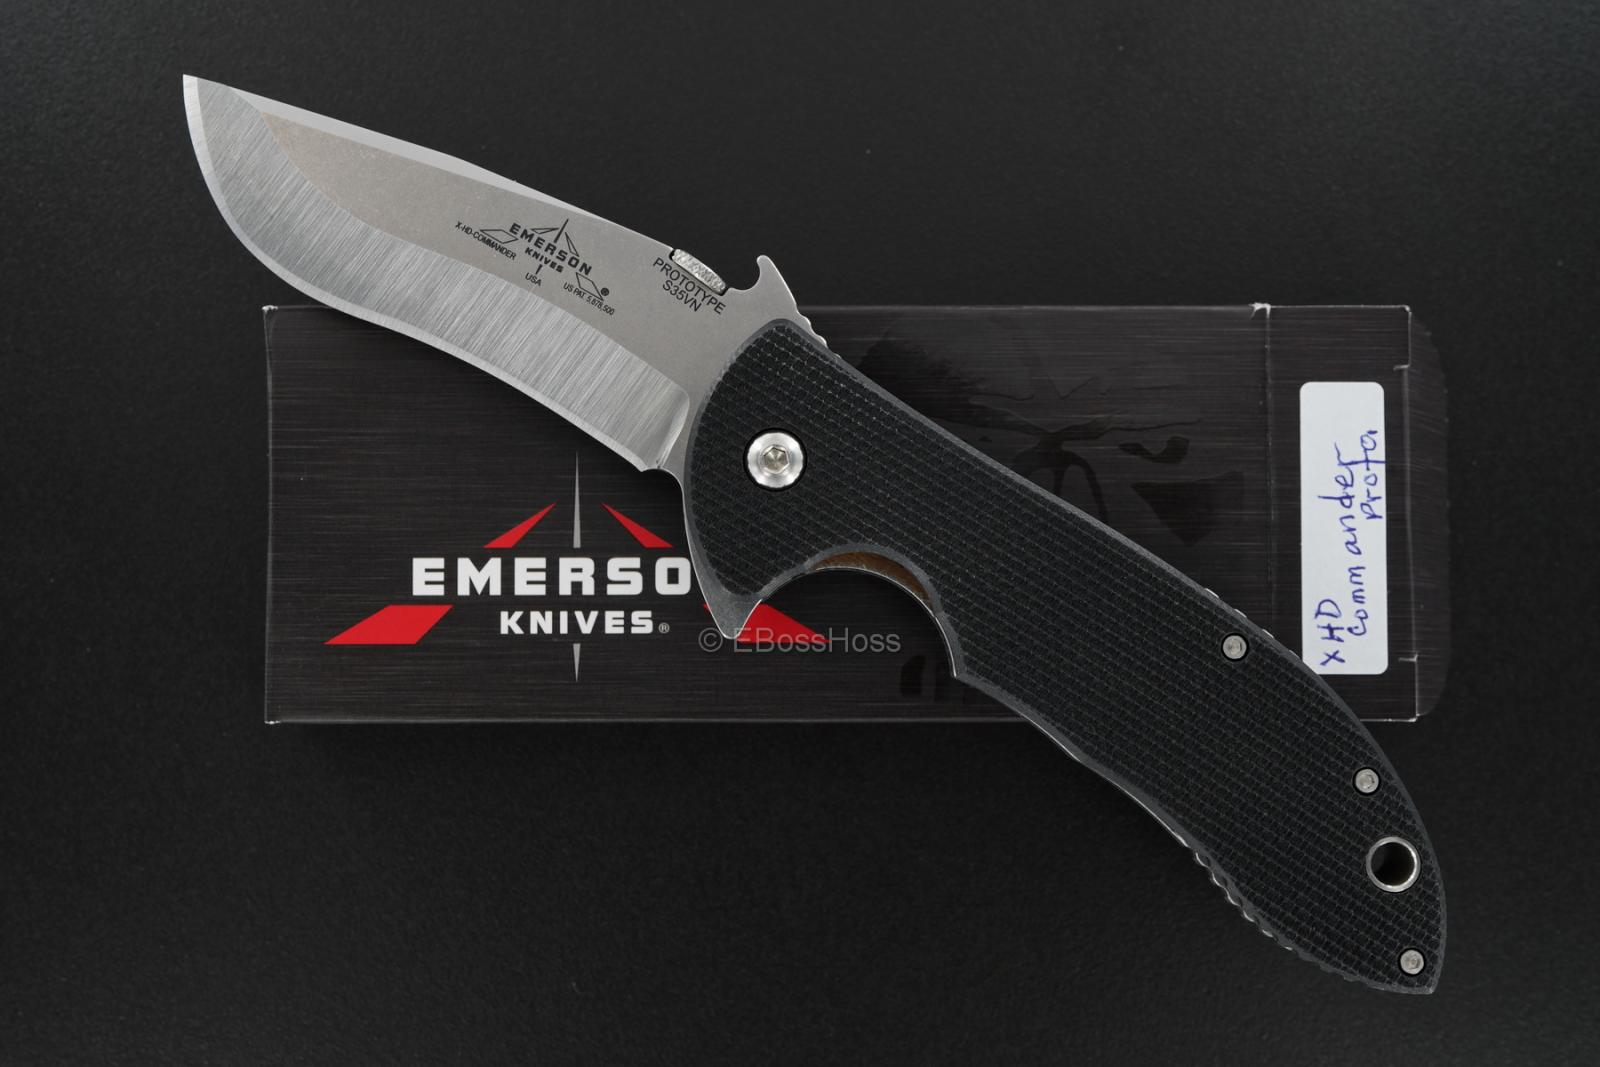 Ernie Emerson X-HD Commander Flipper Prototype Hand-ground by Ernie